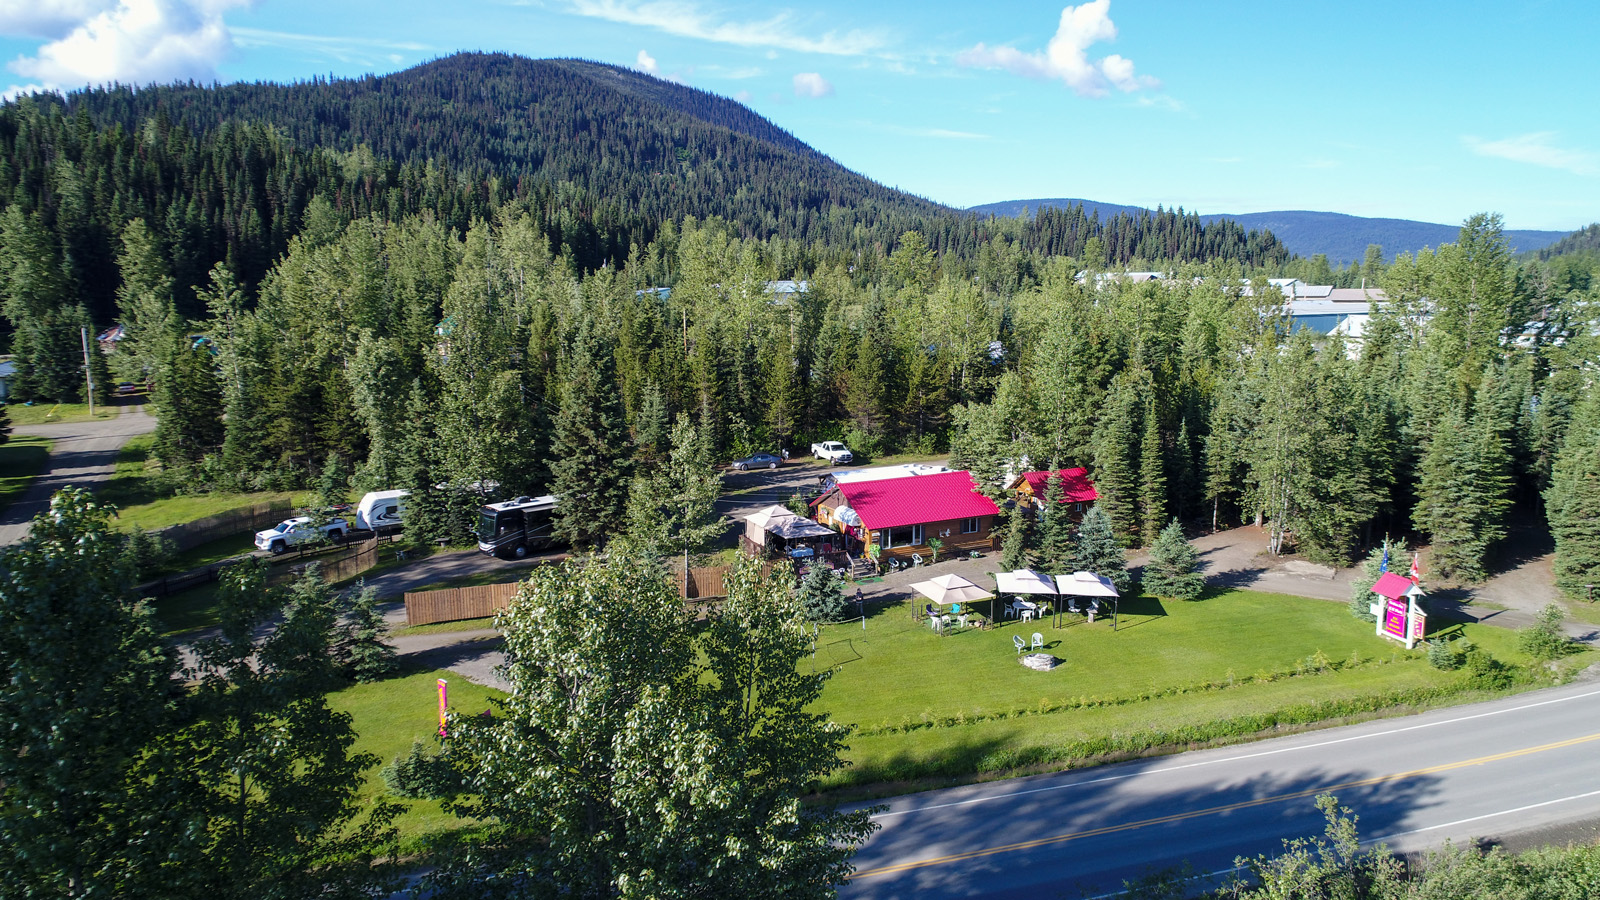 Cariboo joy rv park 01